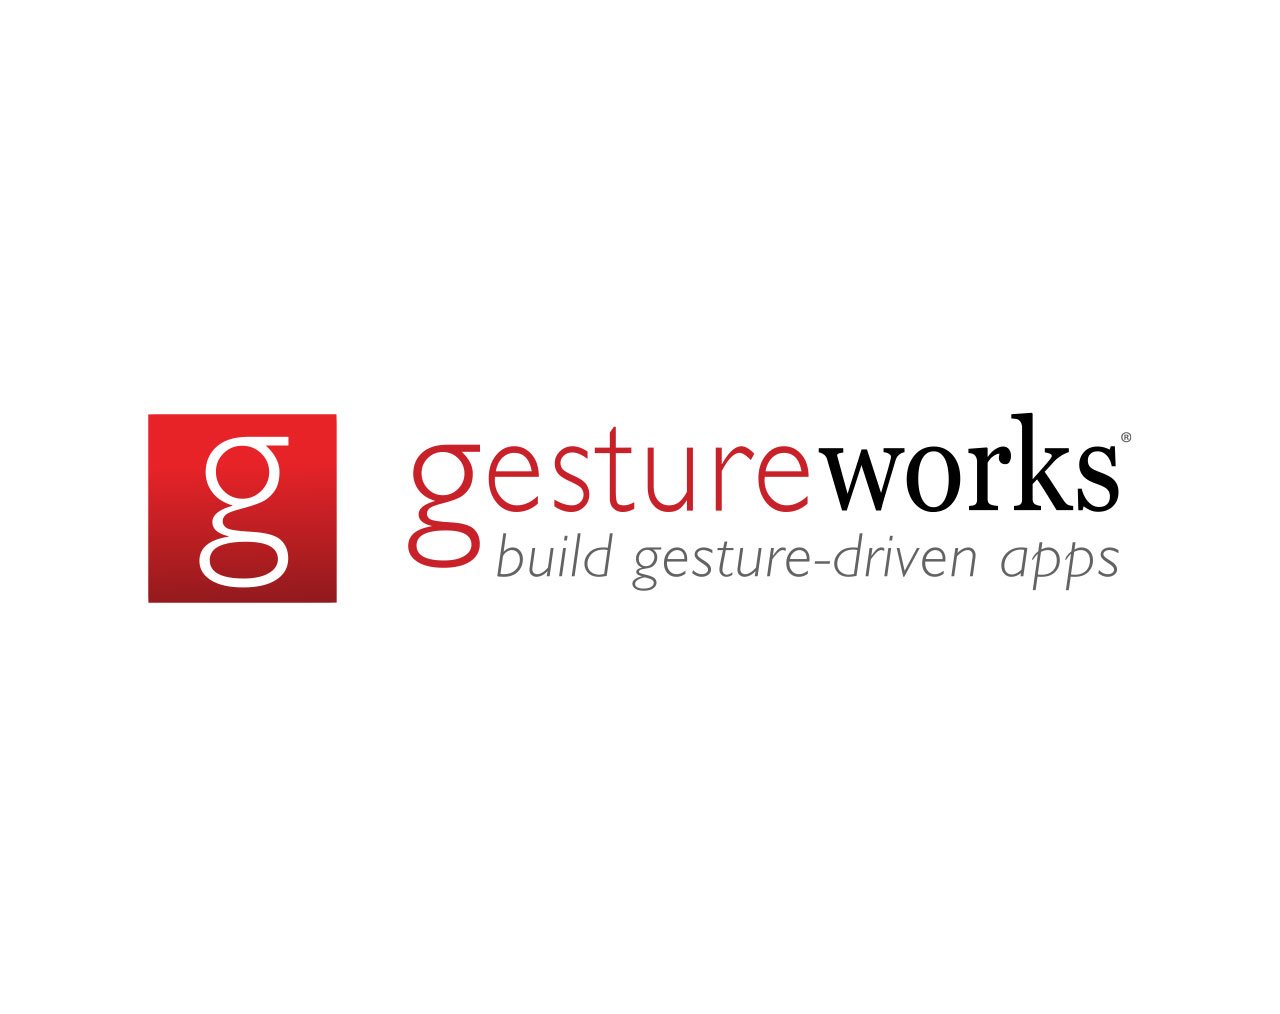 Image for the post: 'GestureWorks and Open Exhibits – New Releases'